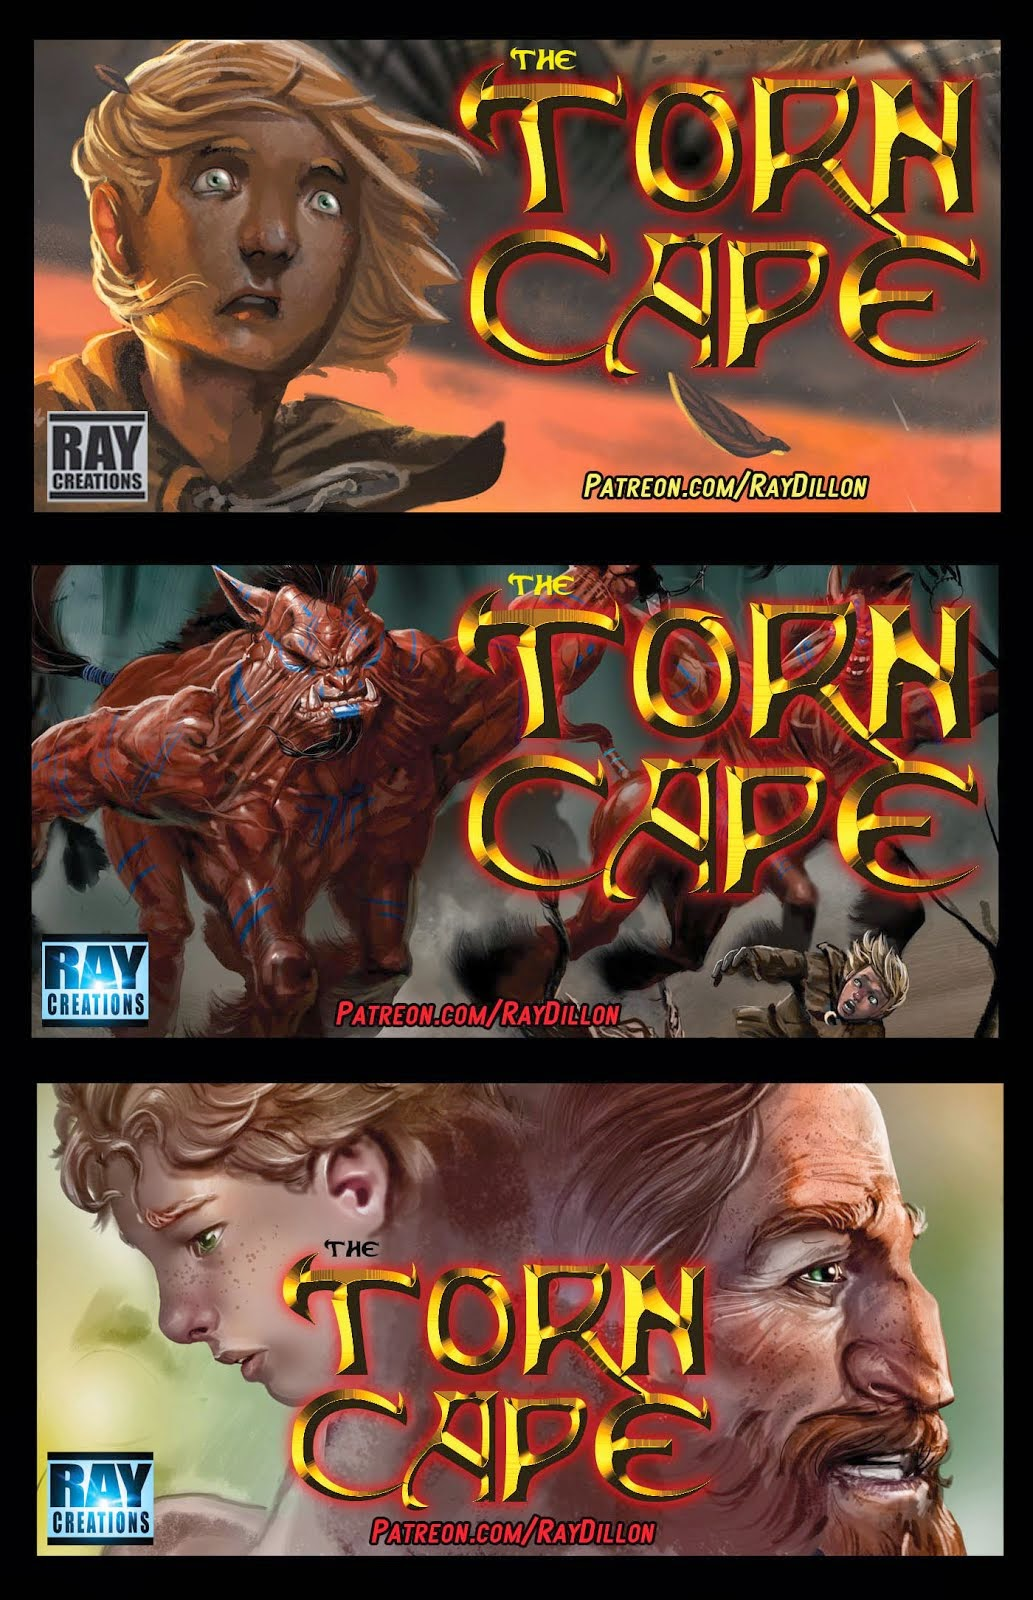 THE TORN CAPE - CREATOR-OWNED PROPERTY!